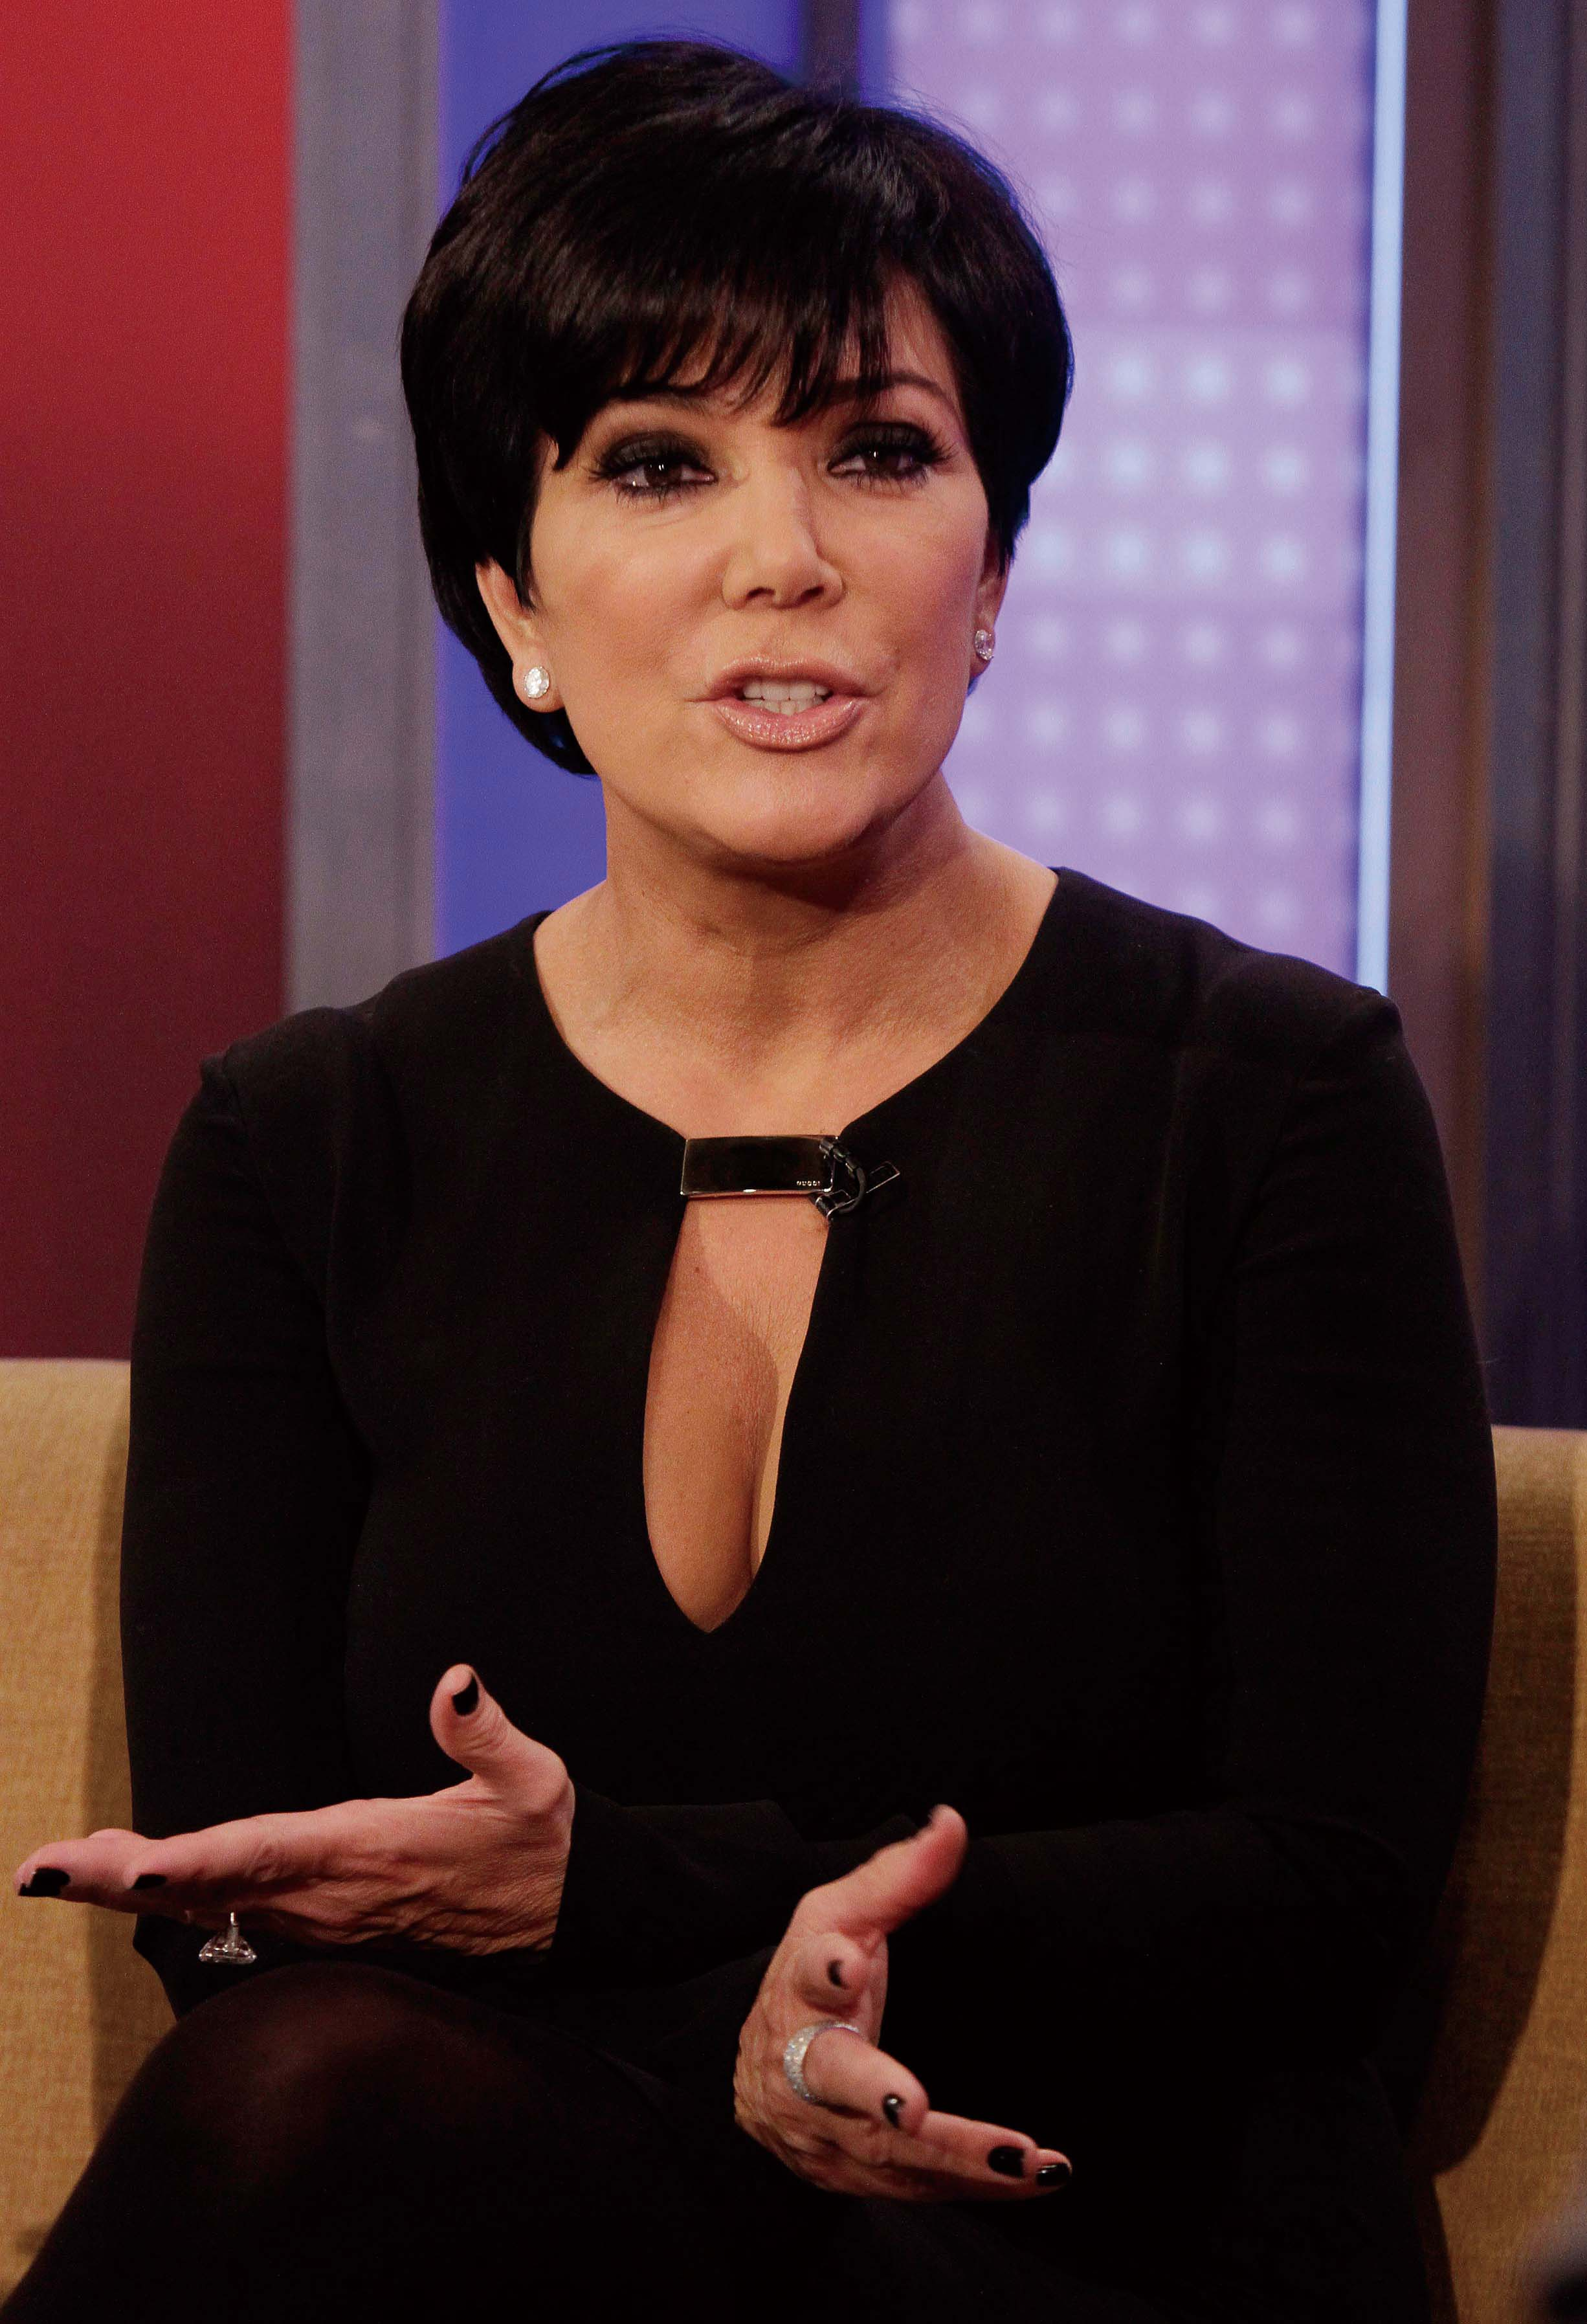 """Kris Jenner, mother of TV personality Kim Kardashian, is interviewed on the """"Fox & friends"""" television program in New York Thursday, Nov. 3, 2011. (As..."""